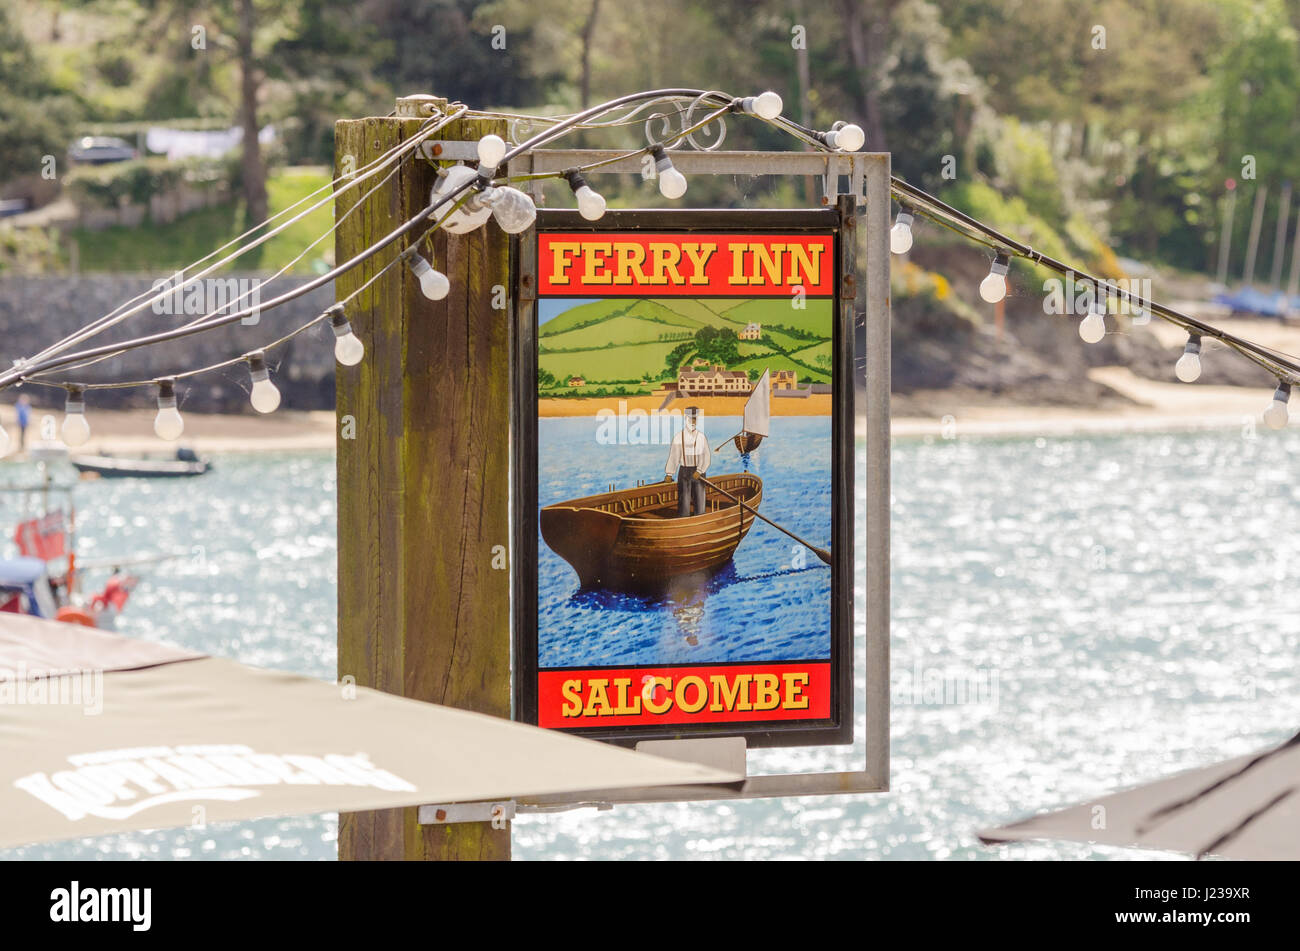 Colourful hanging sign for the Ferry Inn pub in Salcombe, Devon - Stock Image